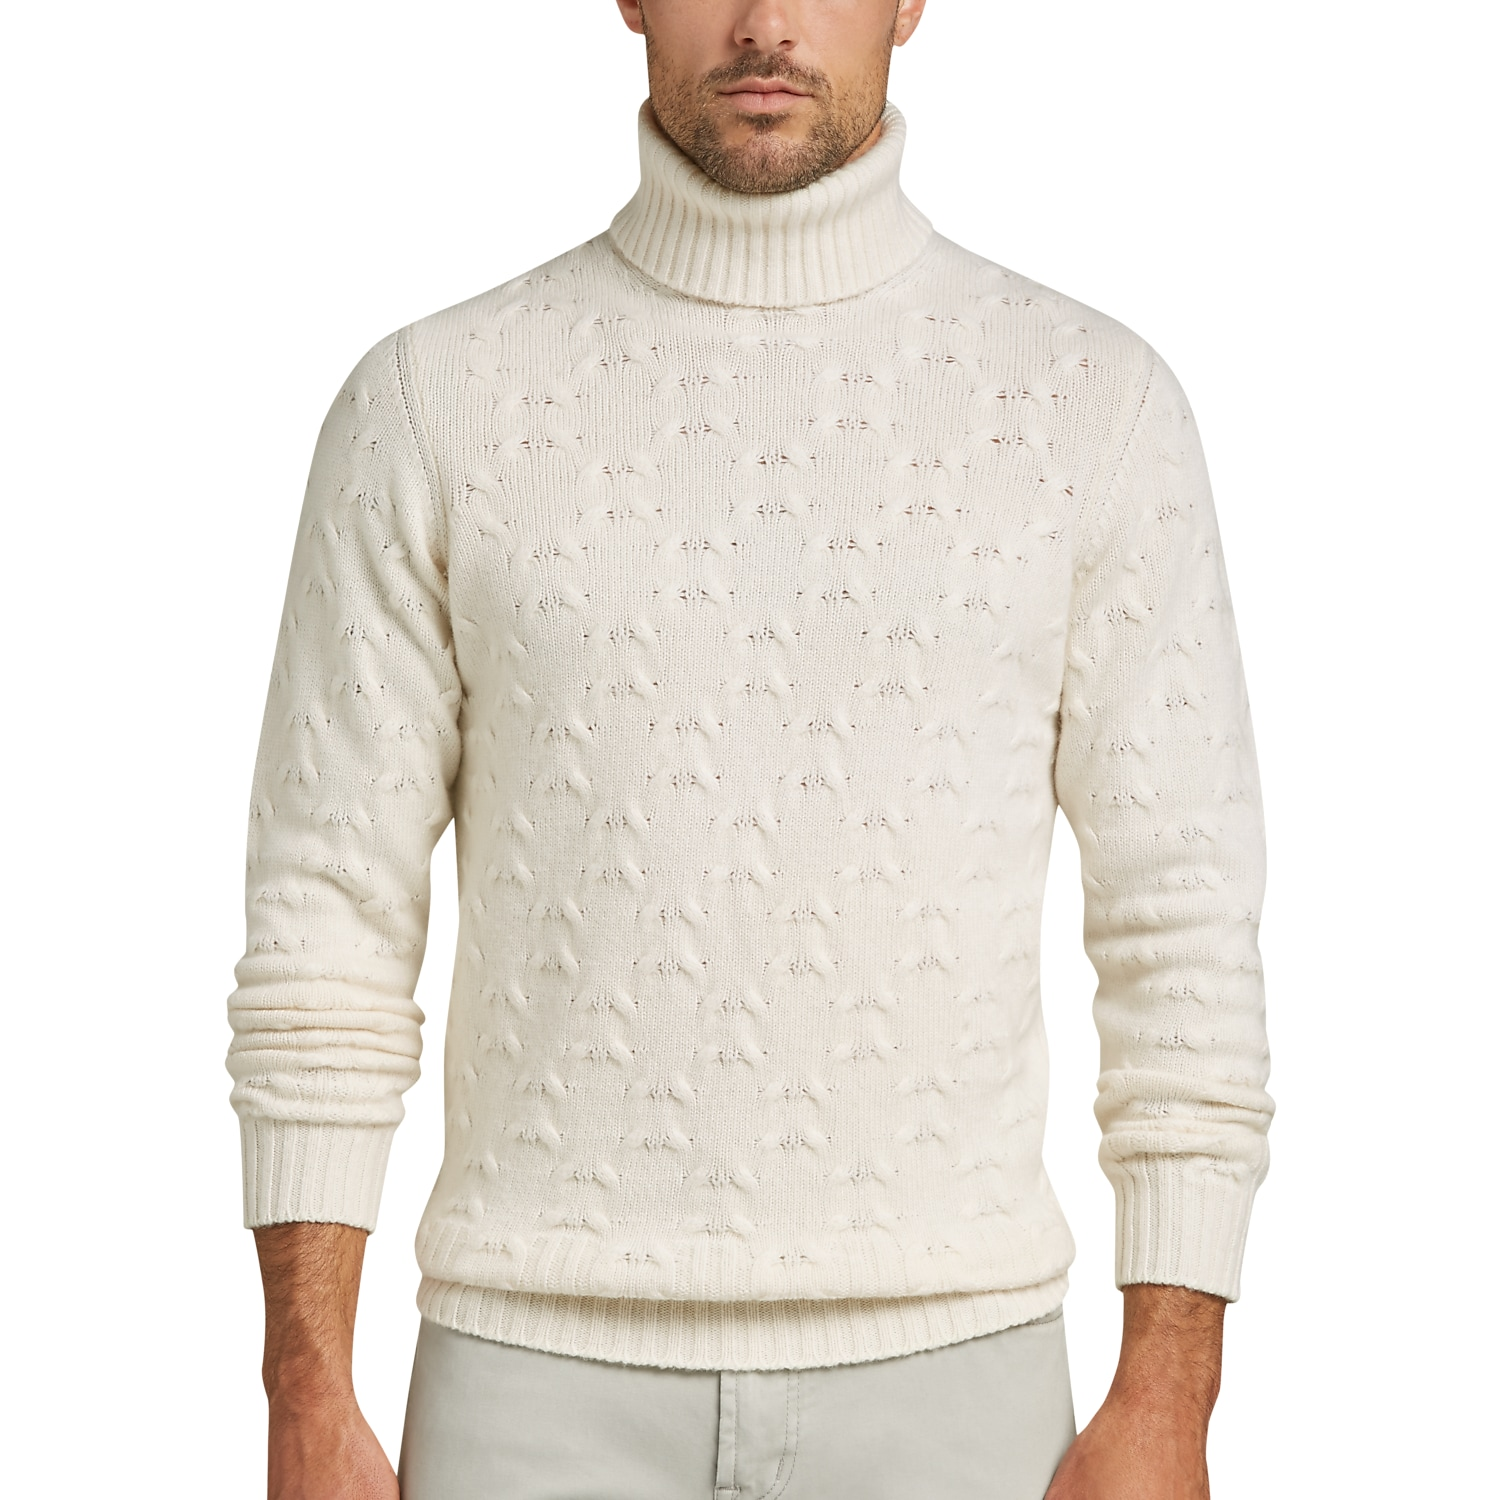 Joseph Abboud Winter White Turtleneck Cashmere-Blend Sweater ...